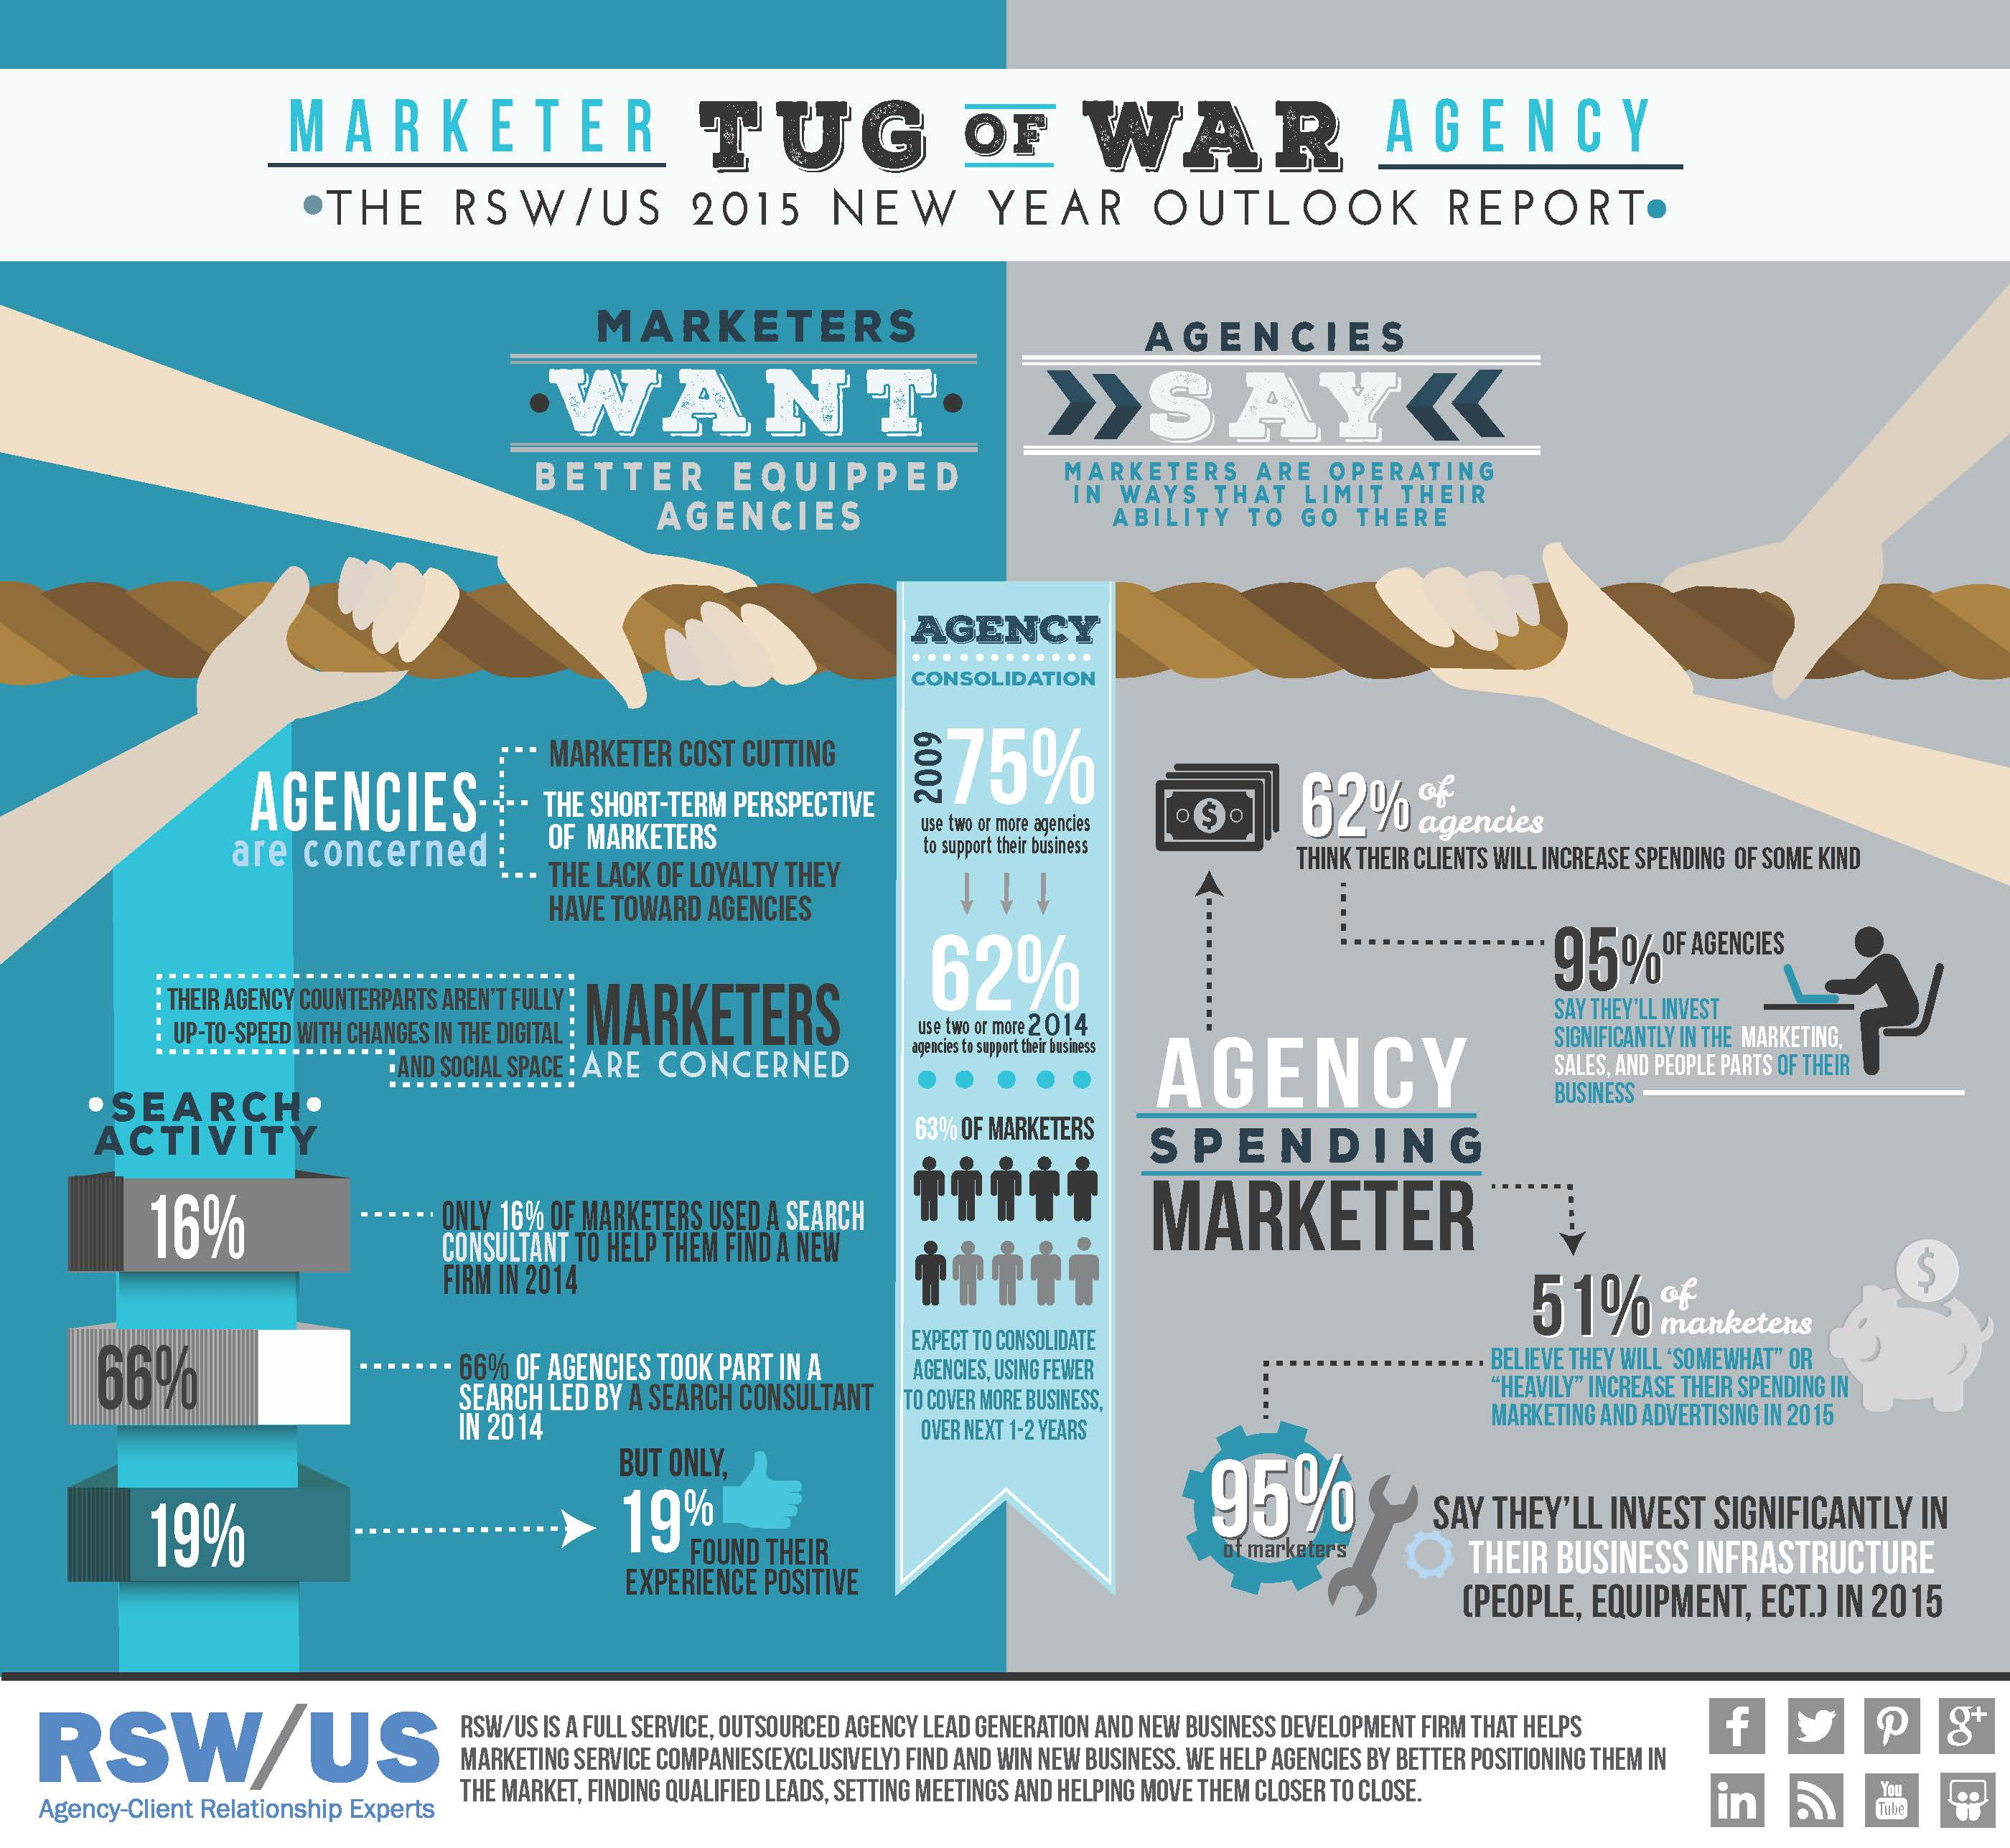 RSWUS-Marketer-Agency Tug of War Infographic jpg